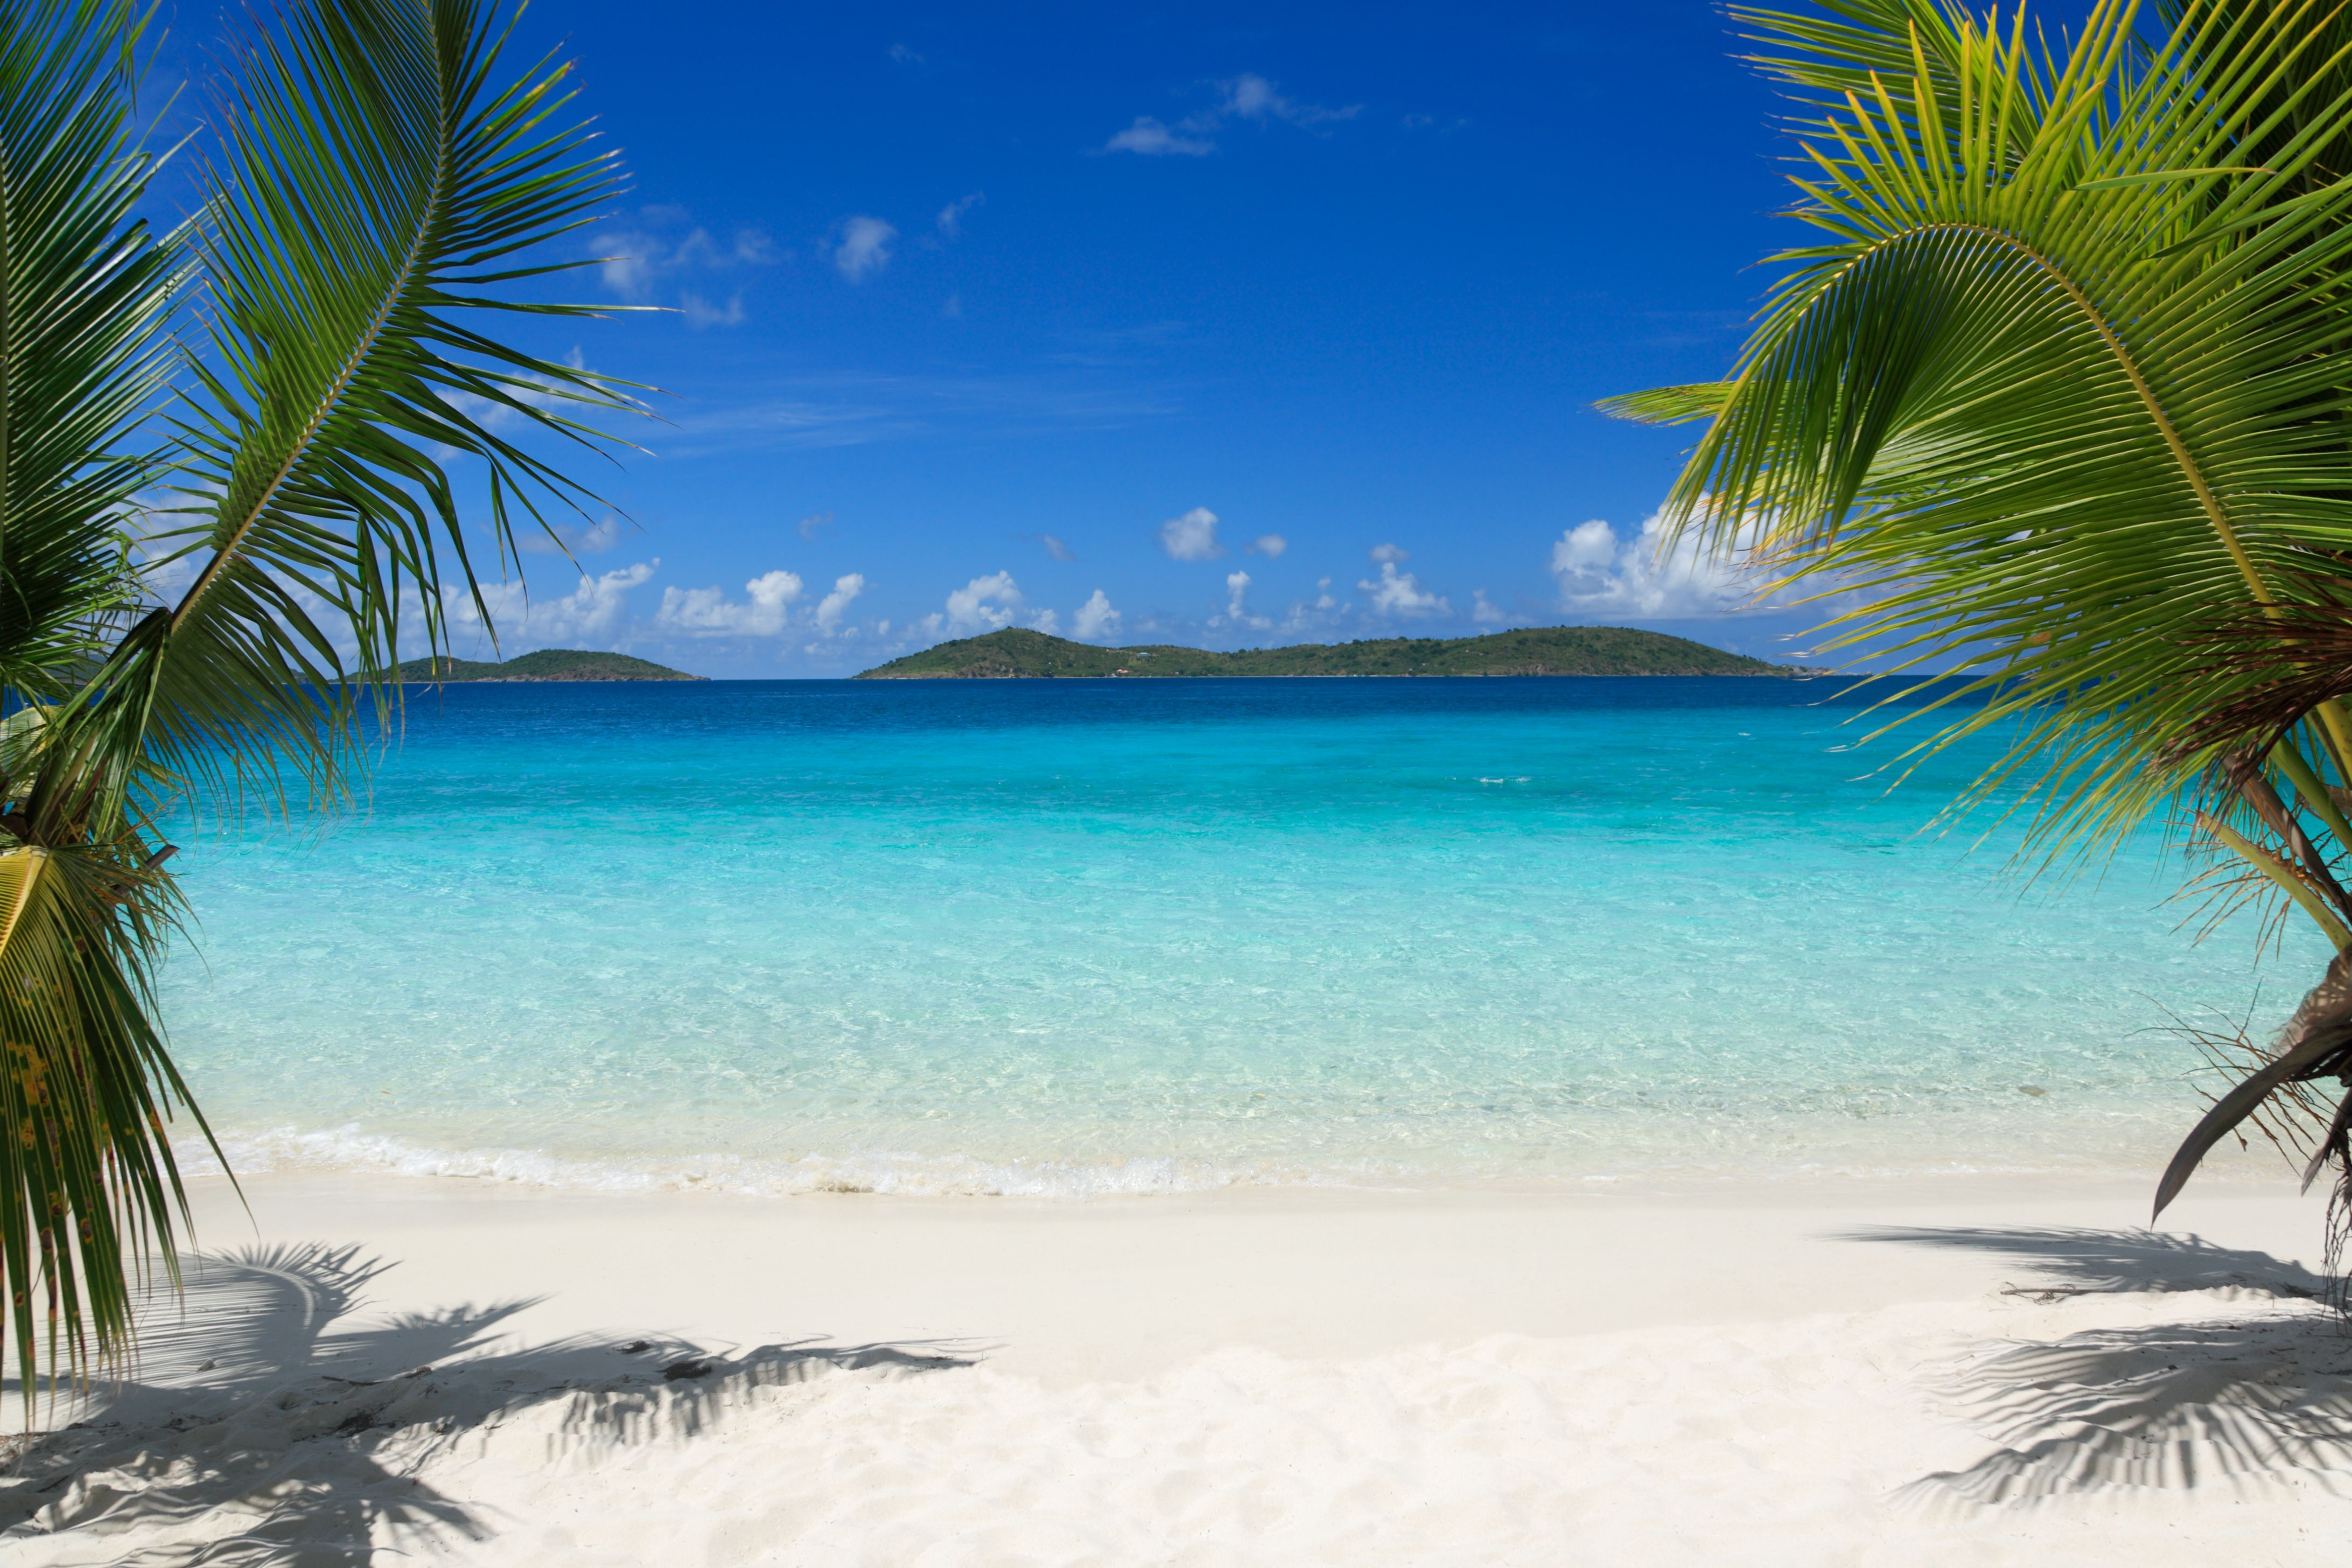 Caribbean Beach Scenes: Beach Wall Murals Window Scenes - Bing Images